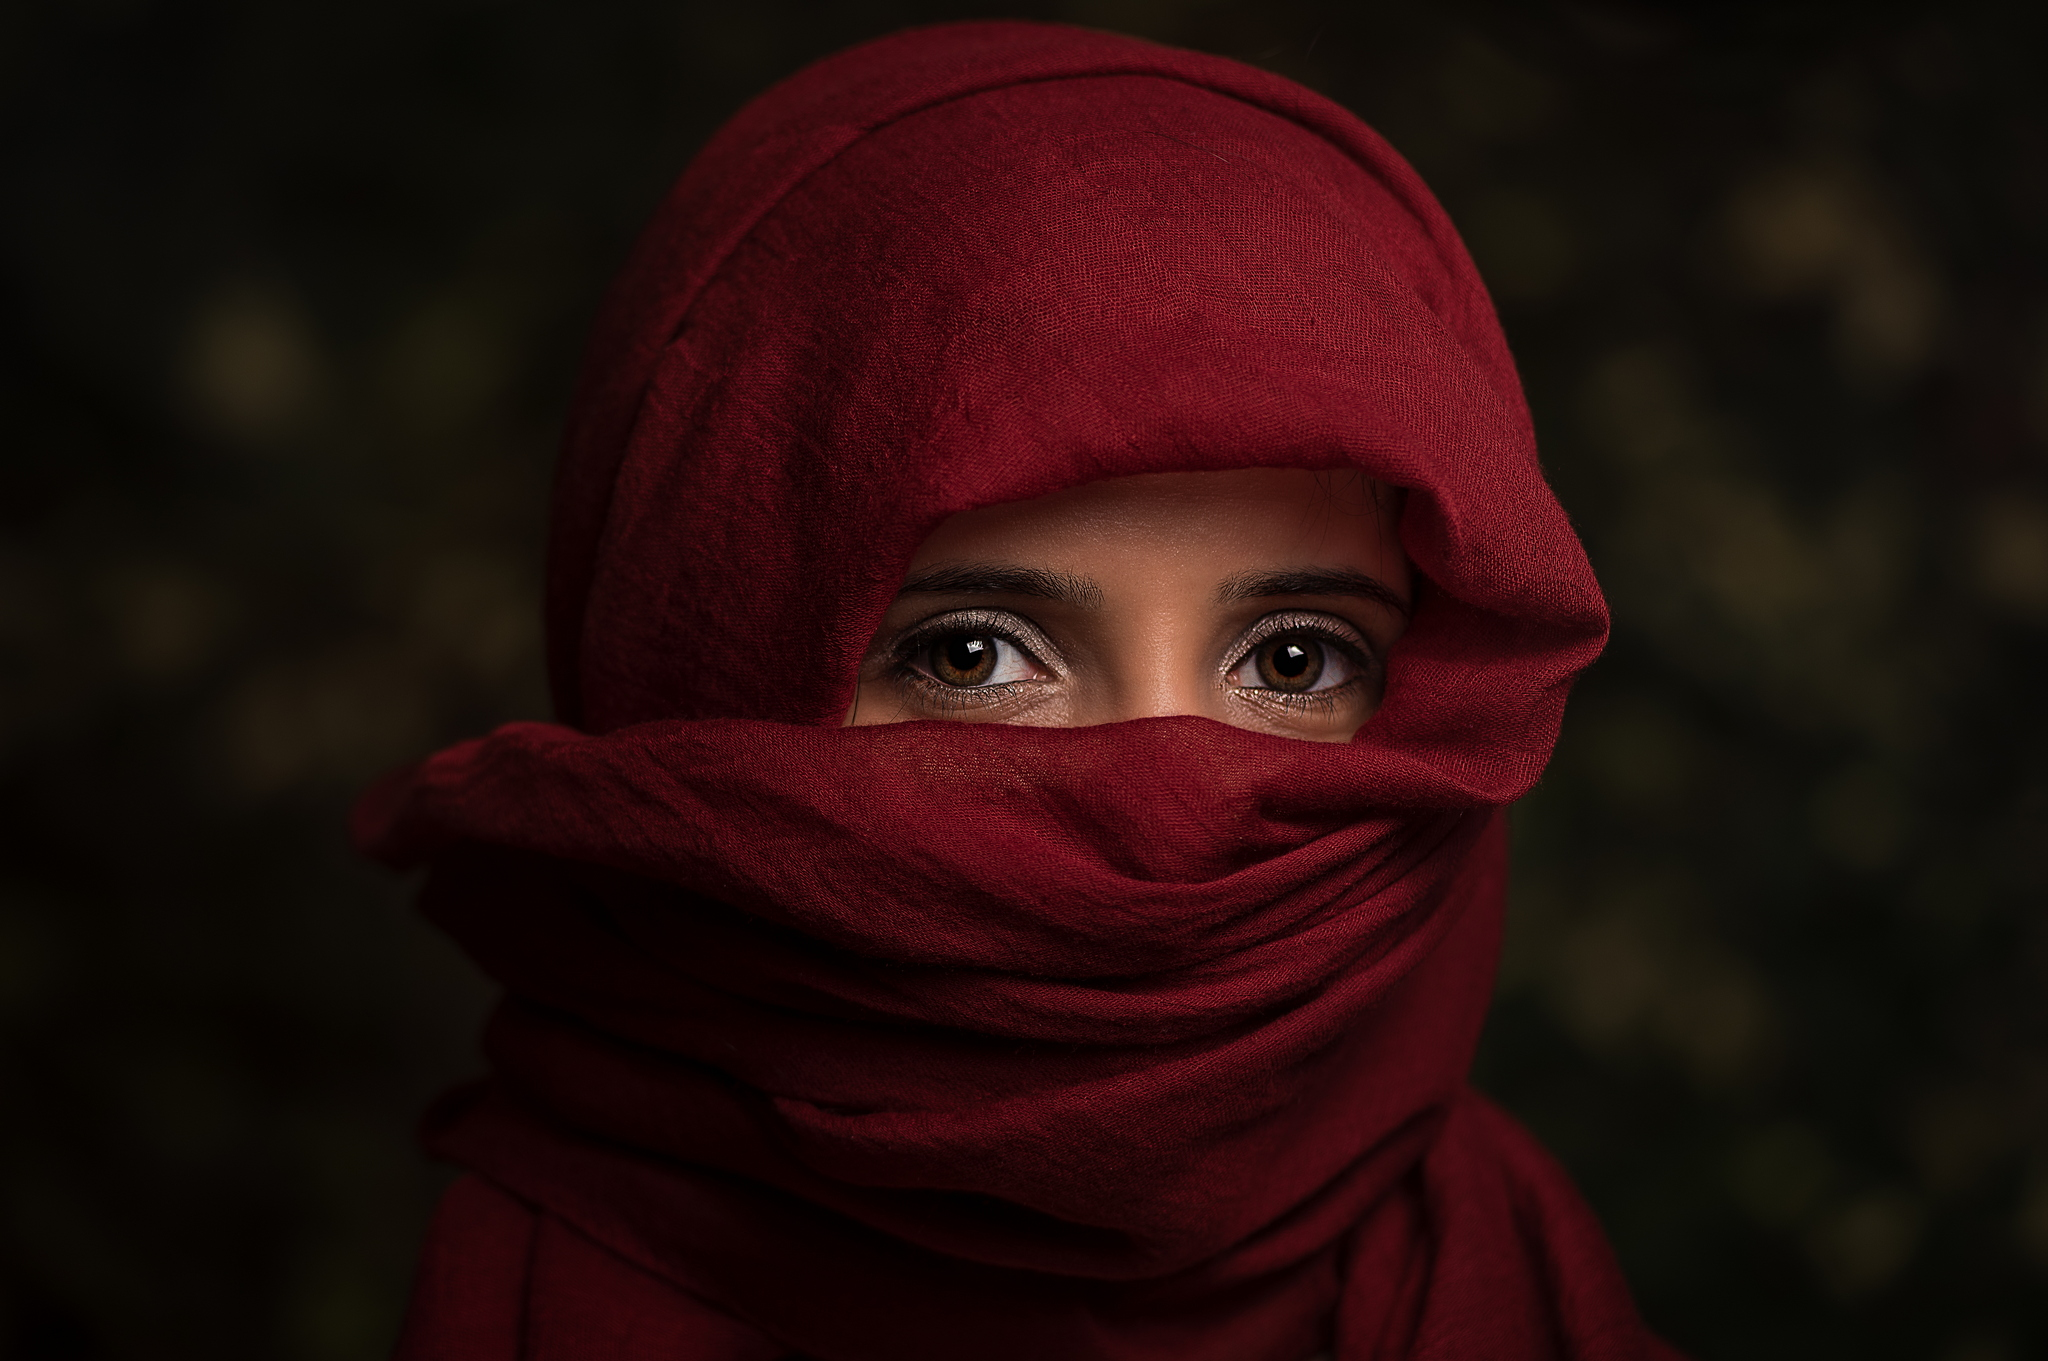 My personal tribute to Steve McCurry...